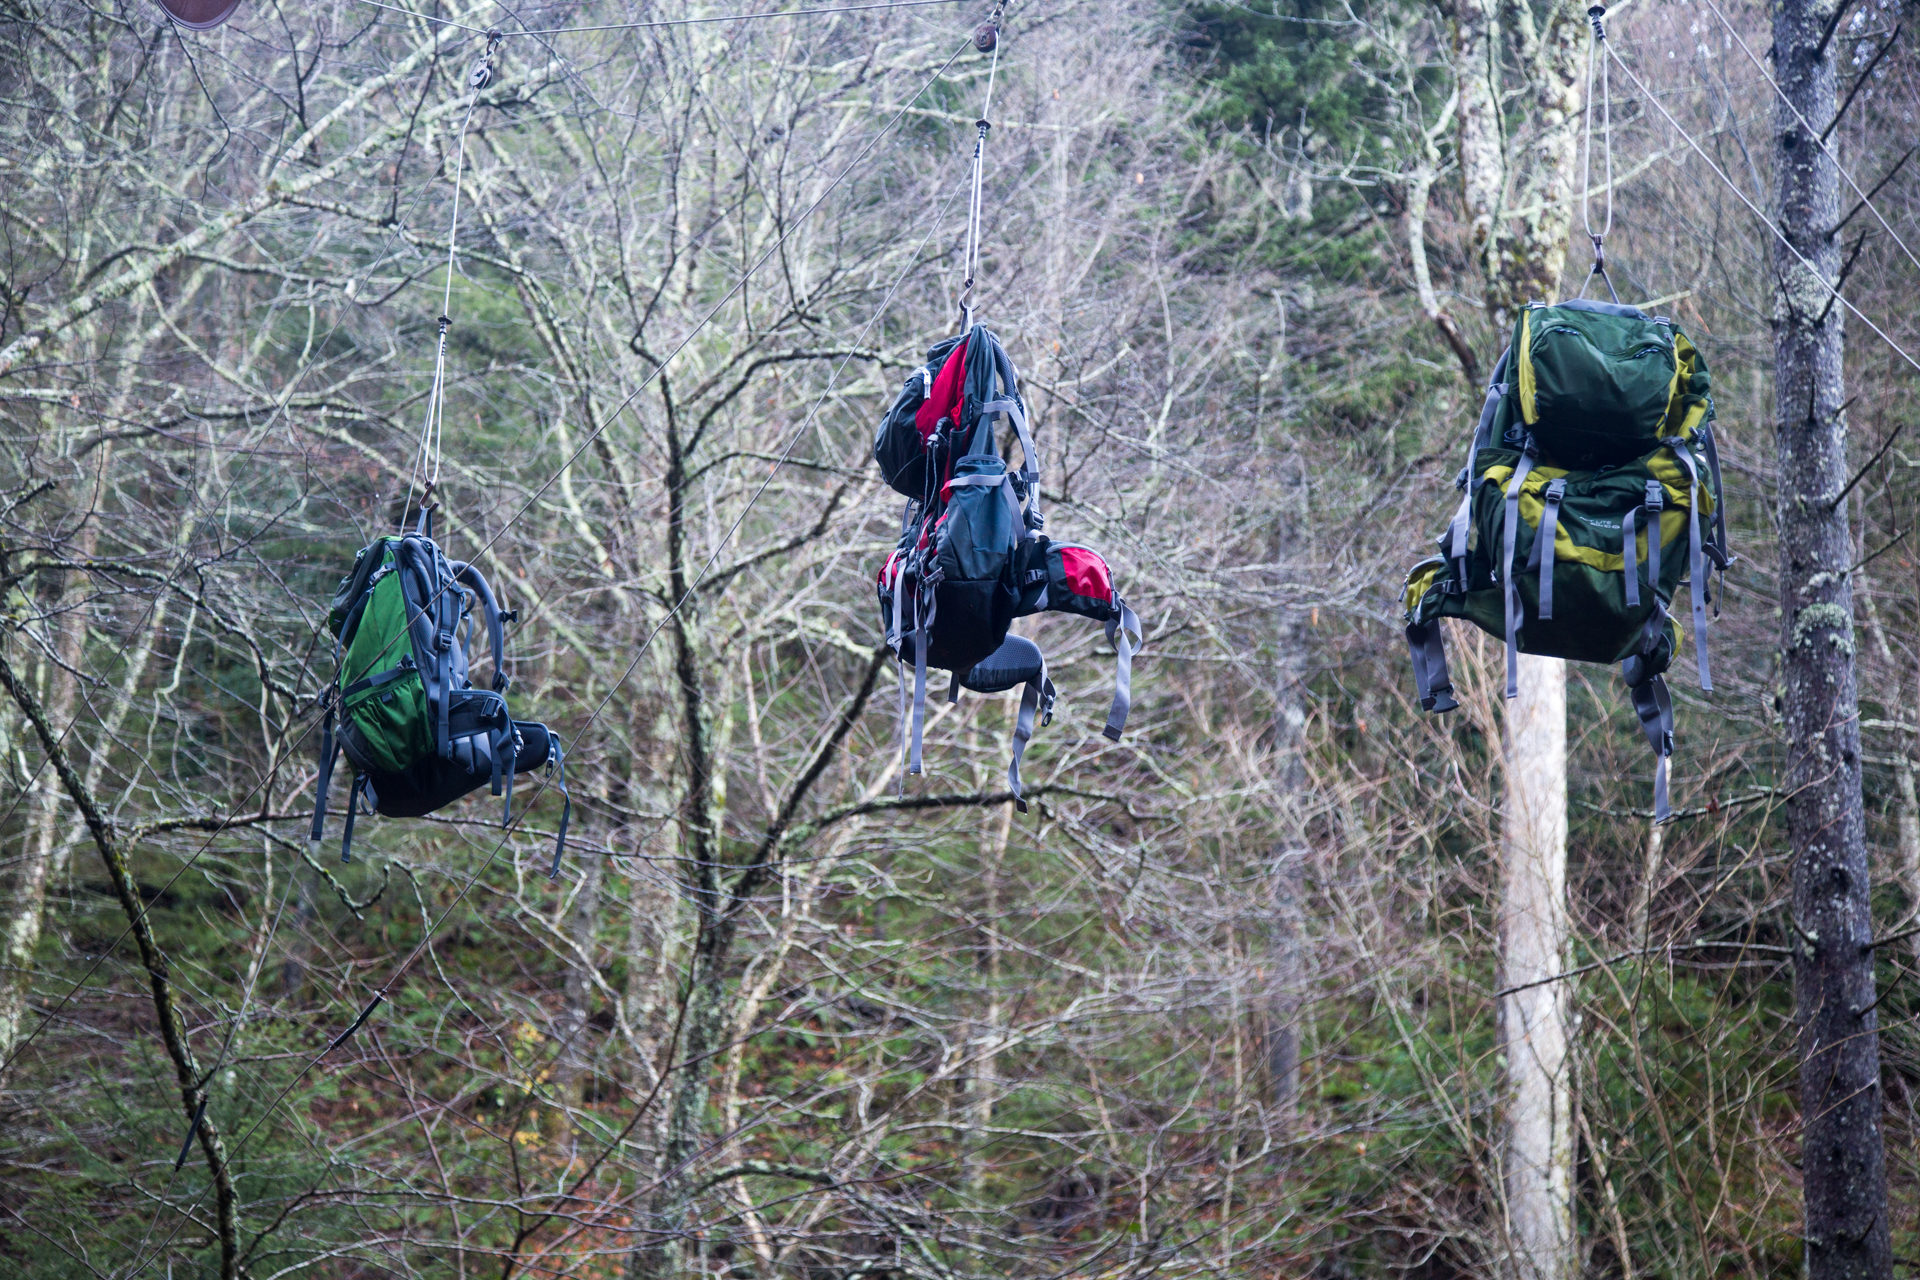 Three backpacks hanging from the trees.